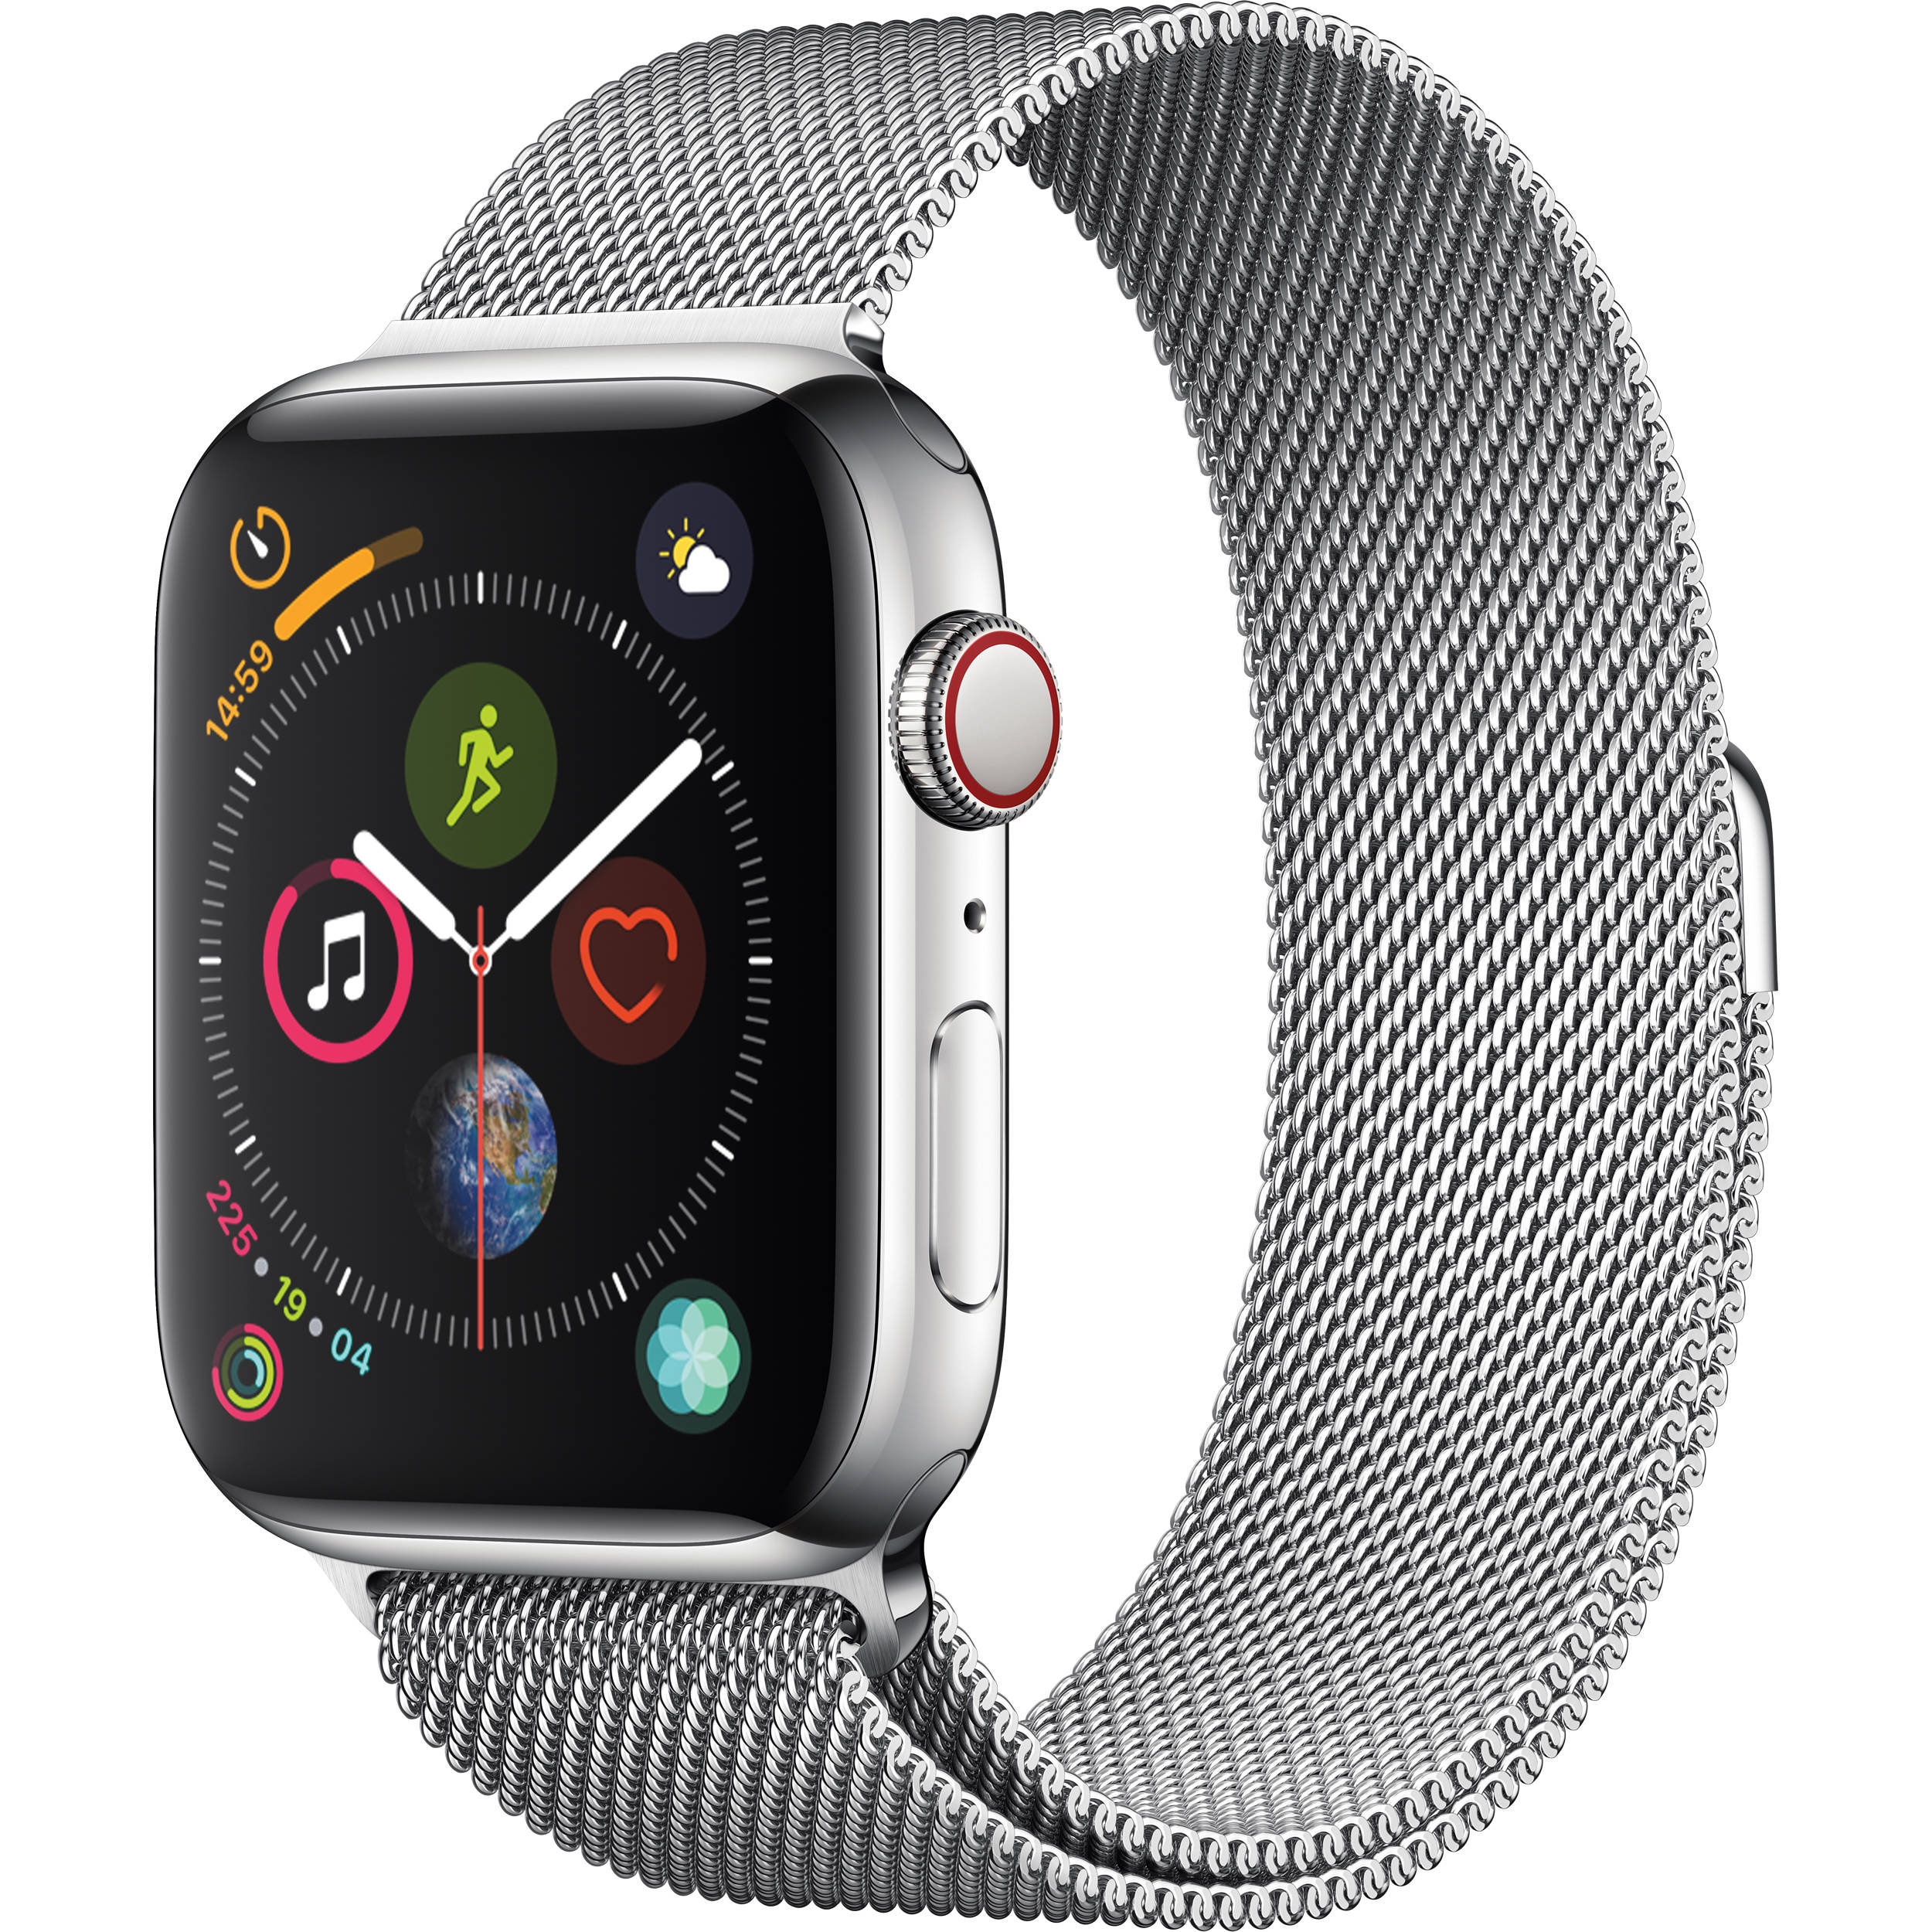 Apple Watch Series 4 Stainless Steel Case with Milanese Loop 44mm (GPS + Cellular)